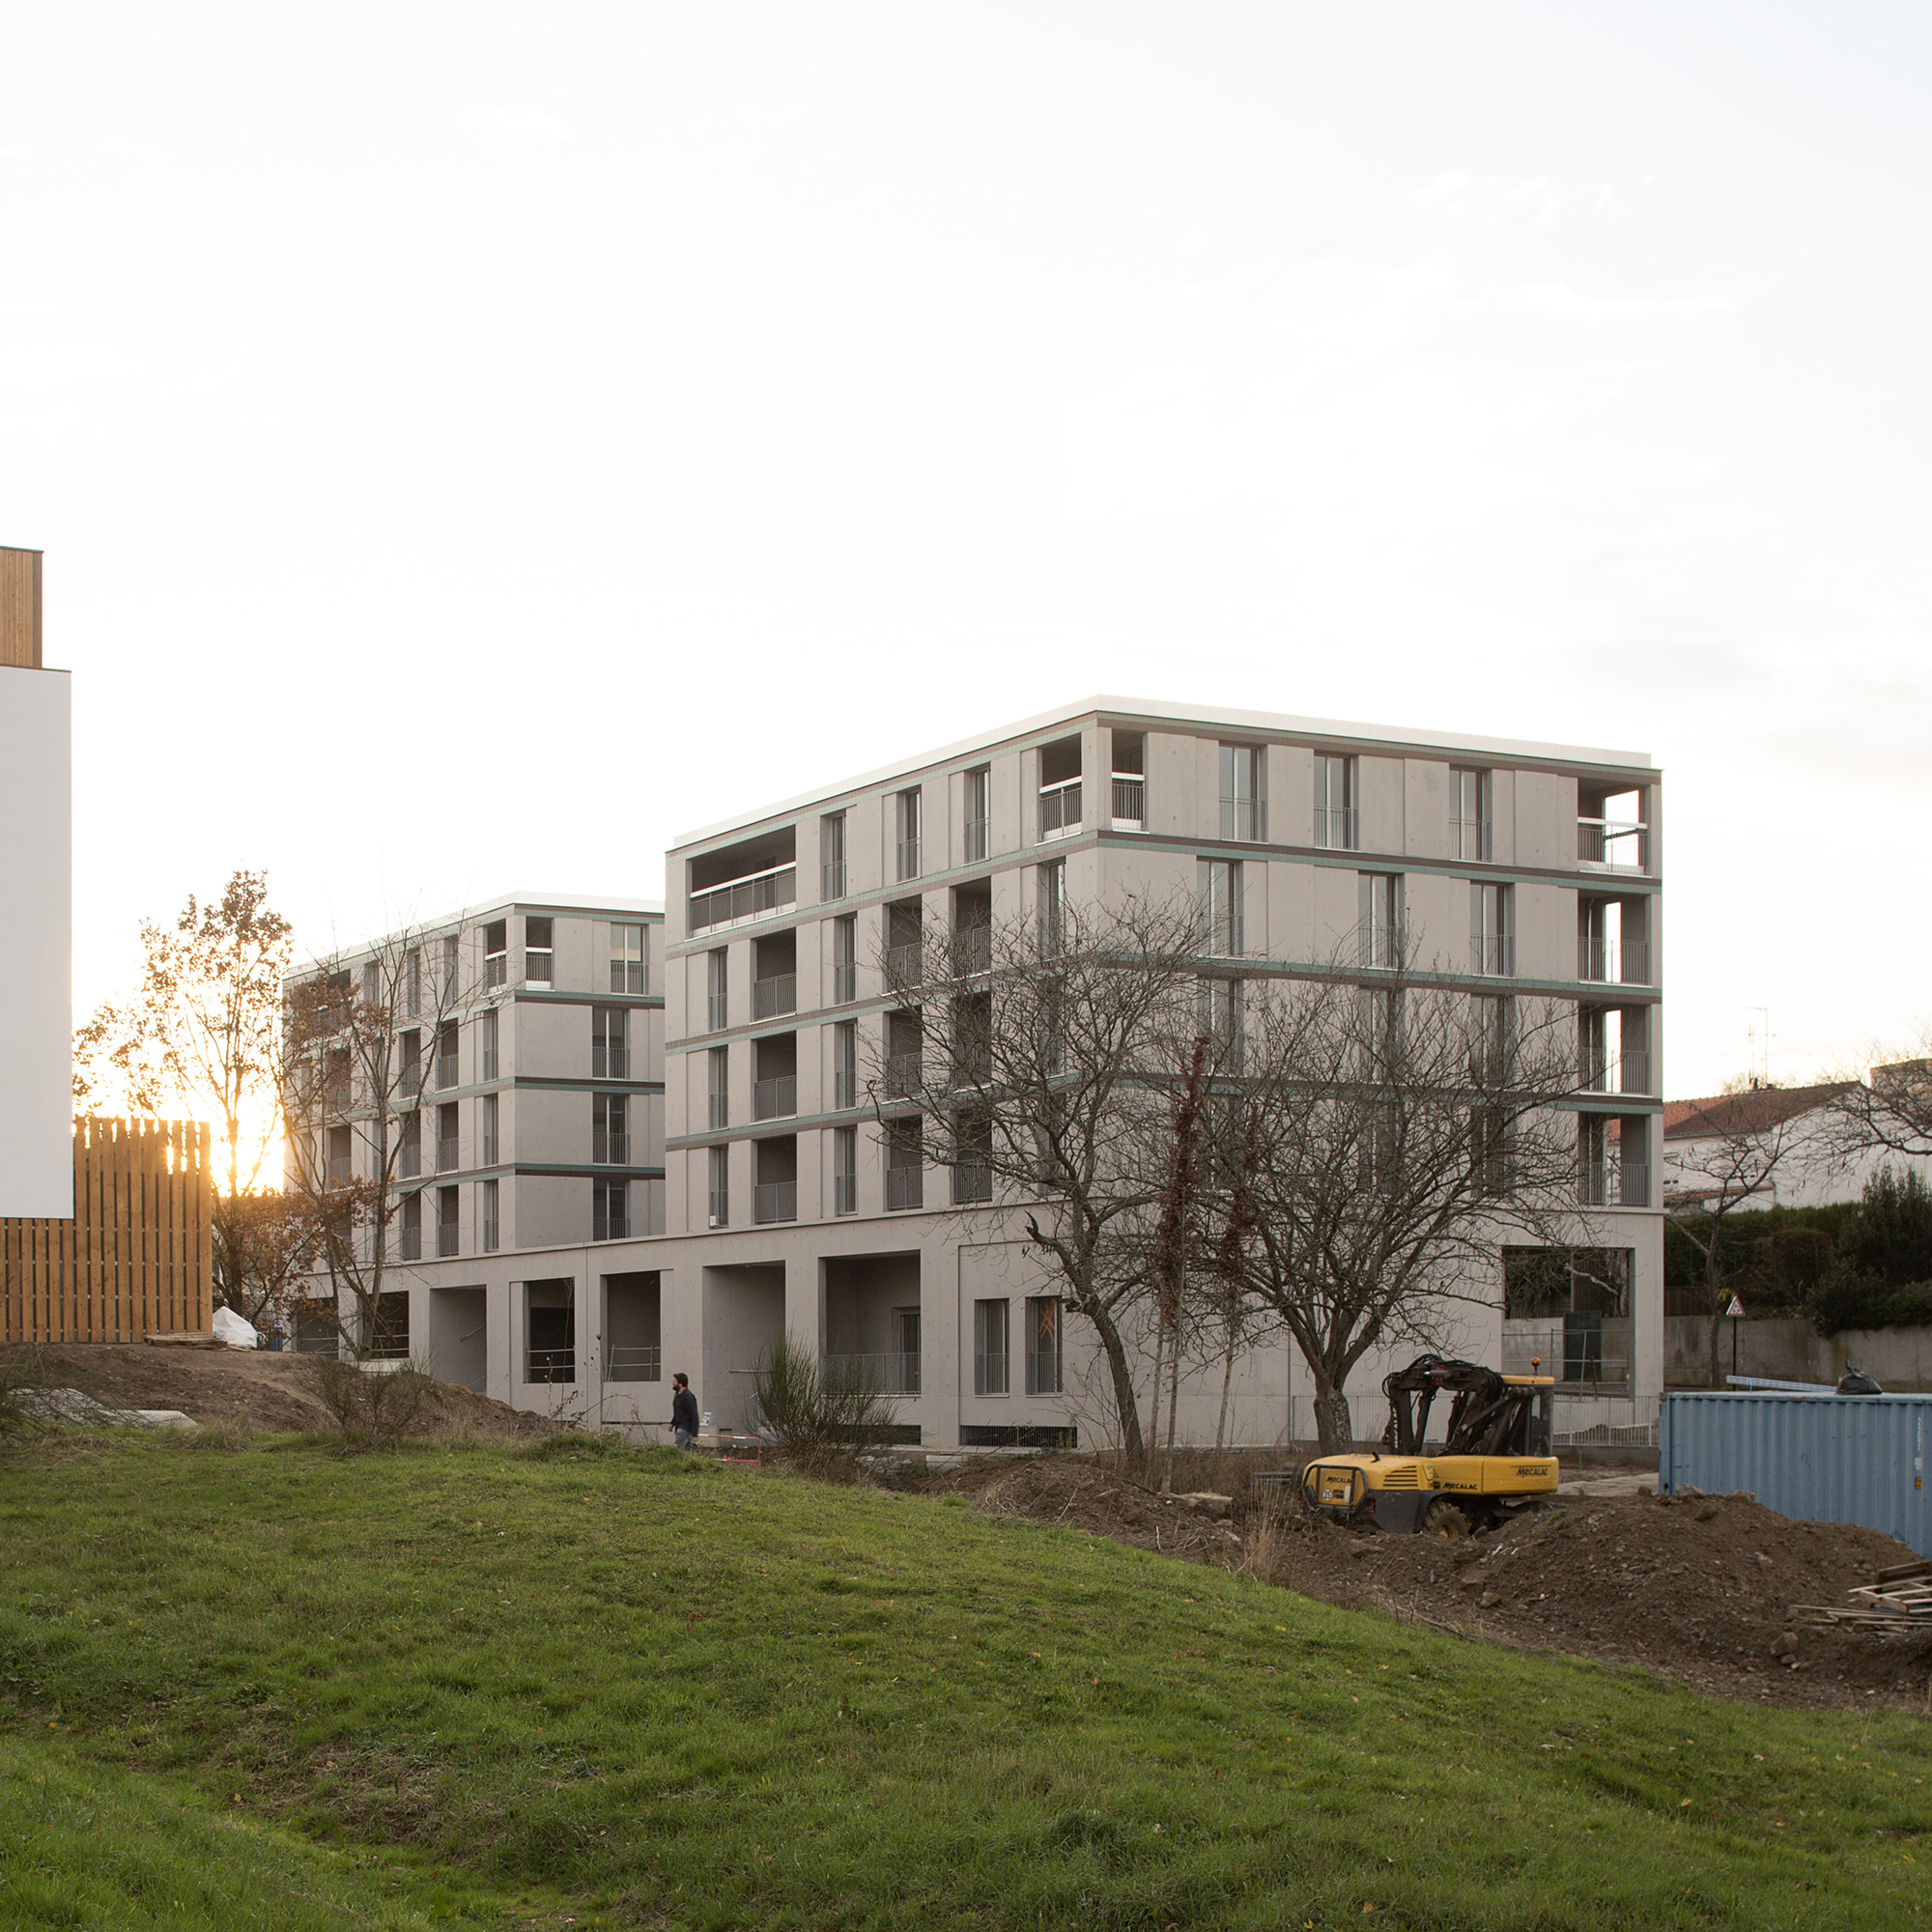 COLLECTIVE HOUSING UNITS - DERVALLIERES